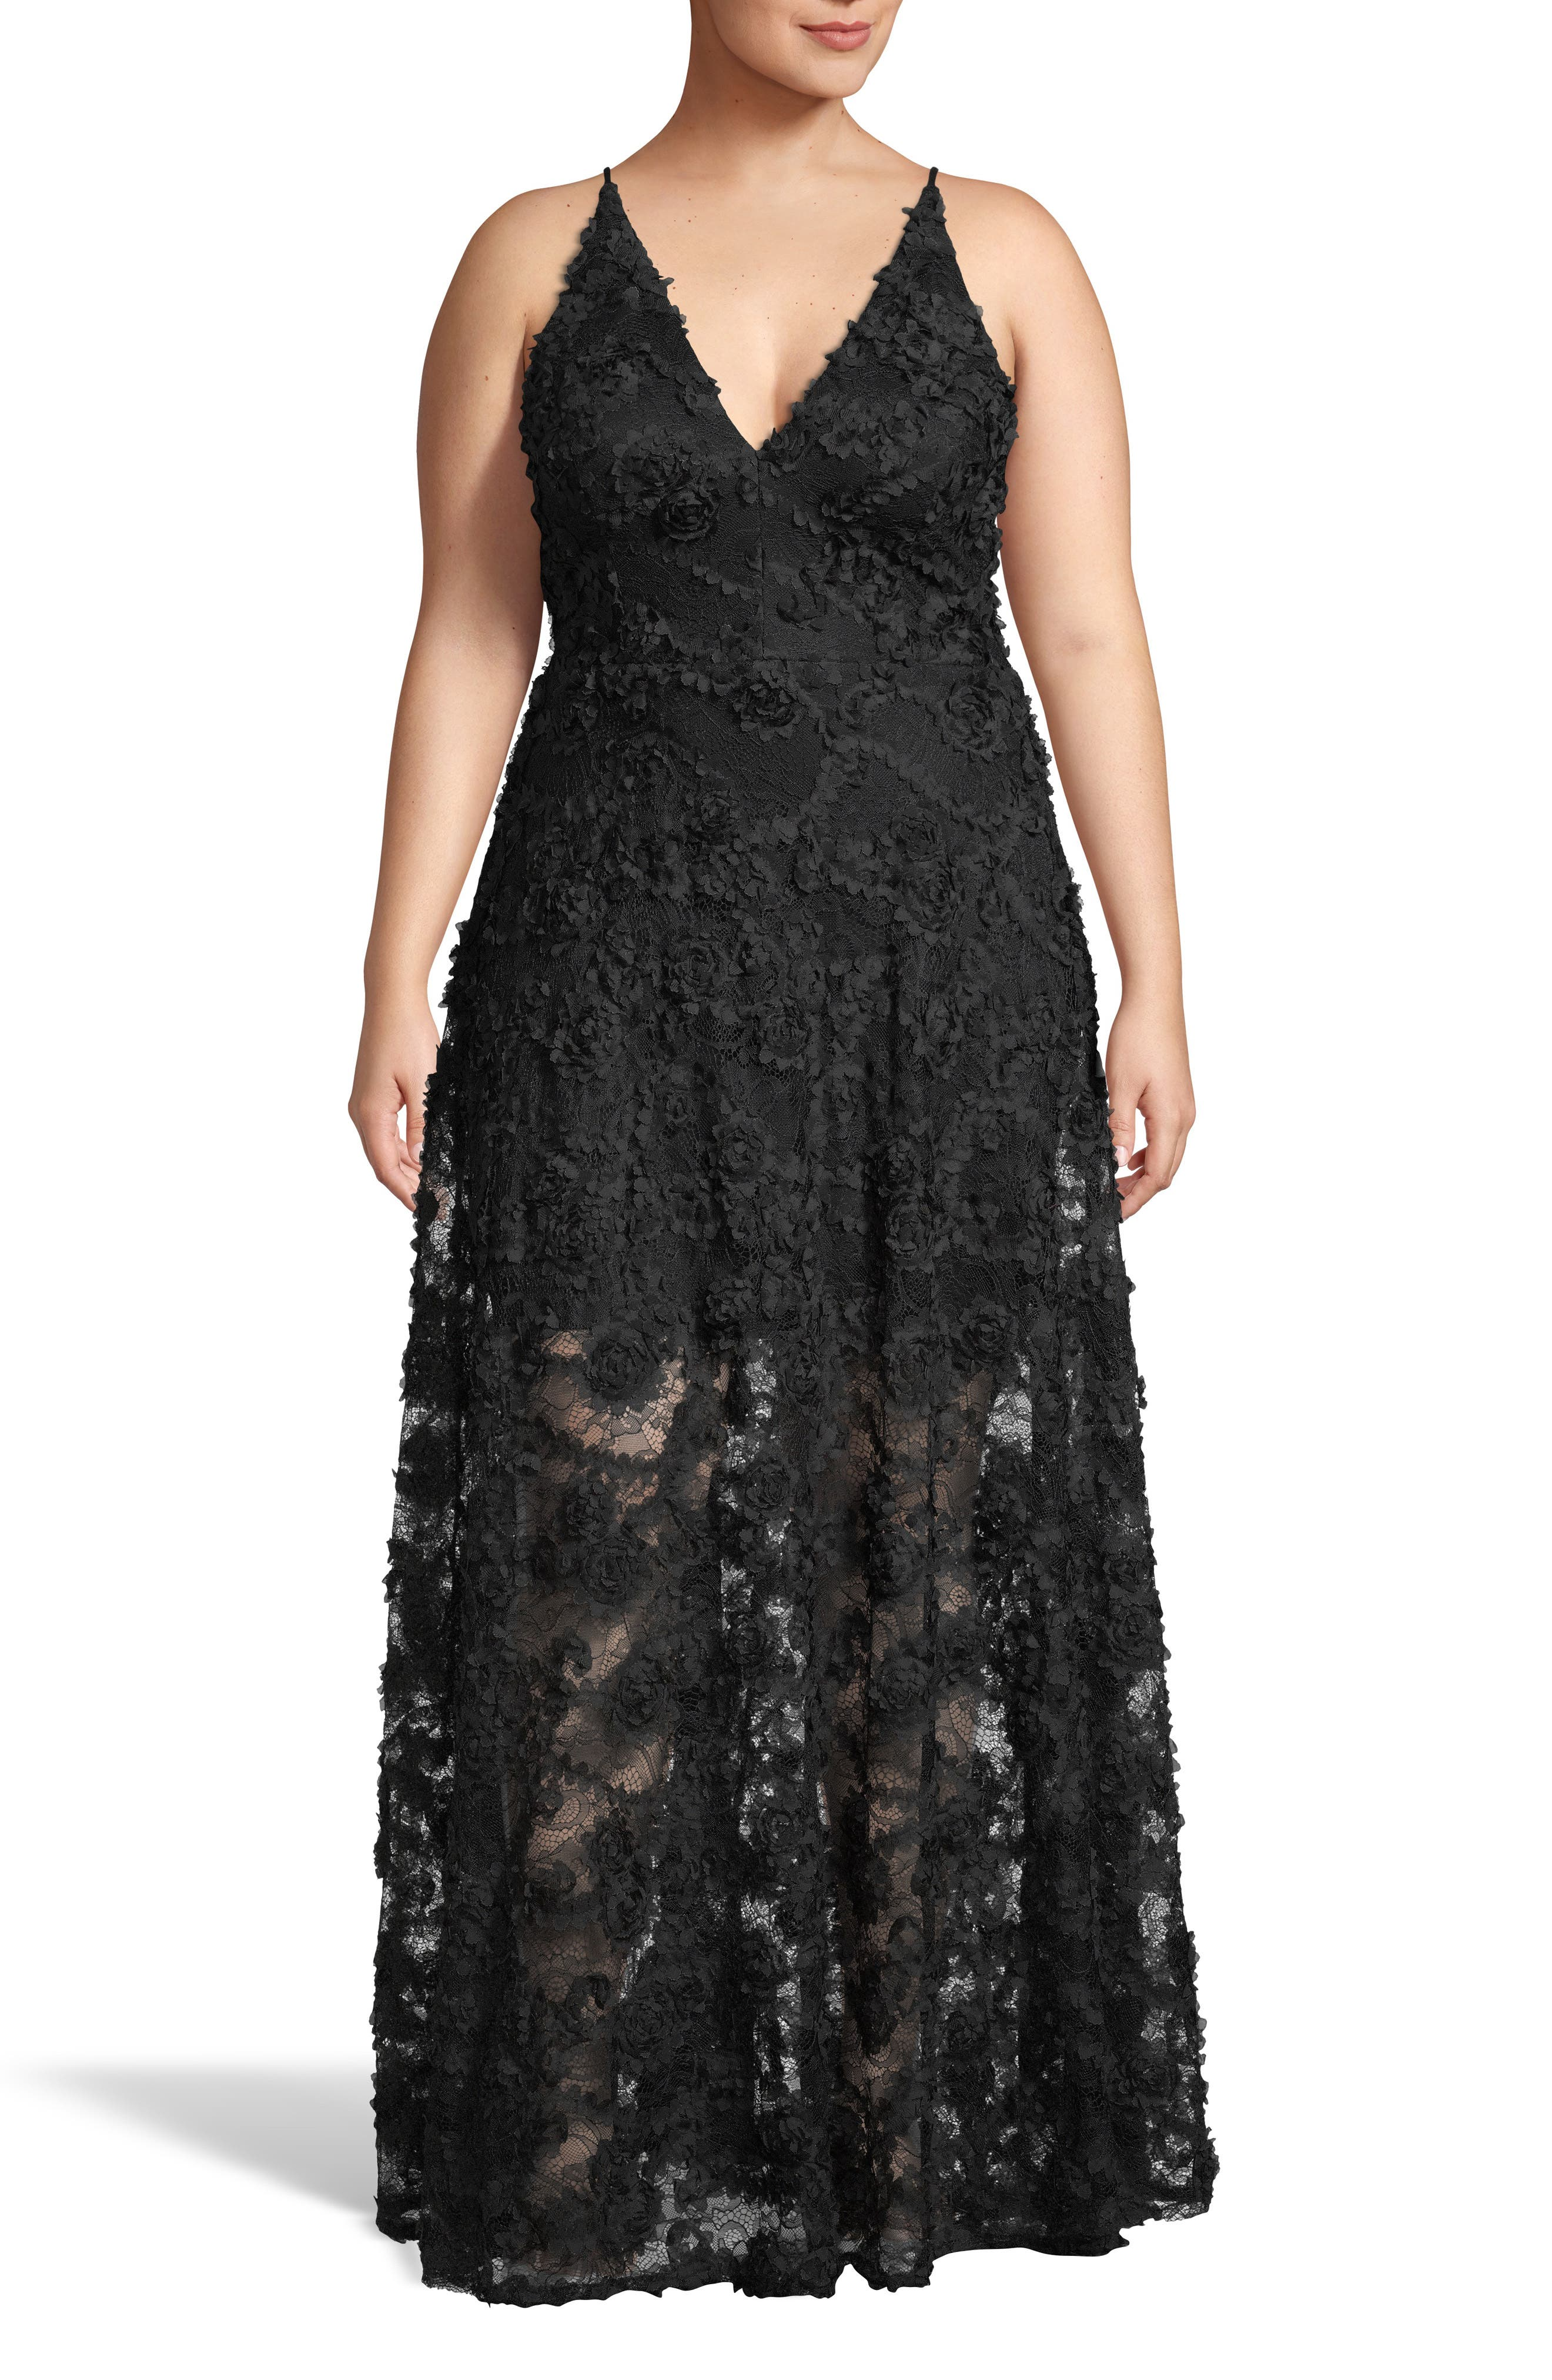 Plus Size Xscape 3D Lace V-Neck Evening Dress, Black